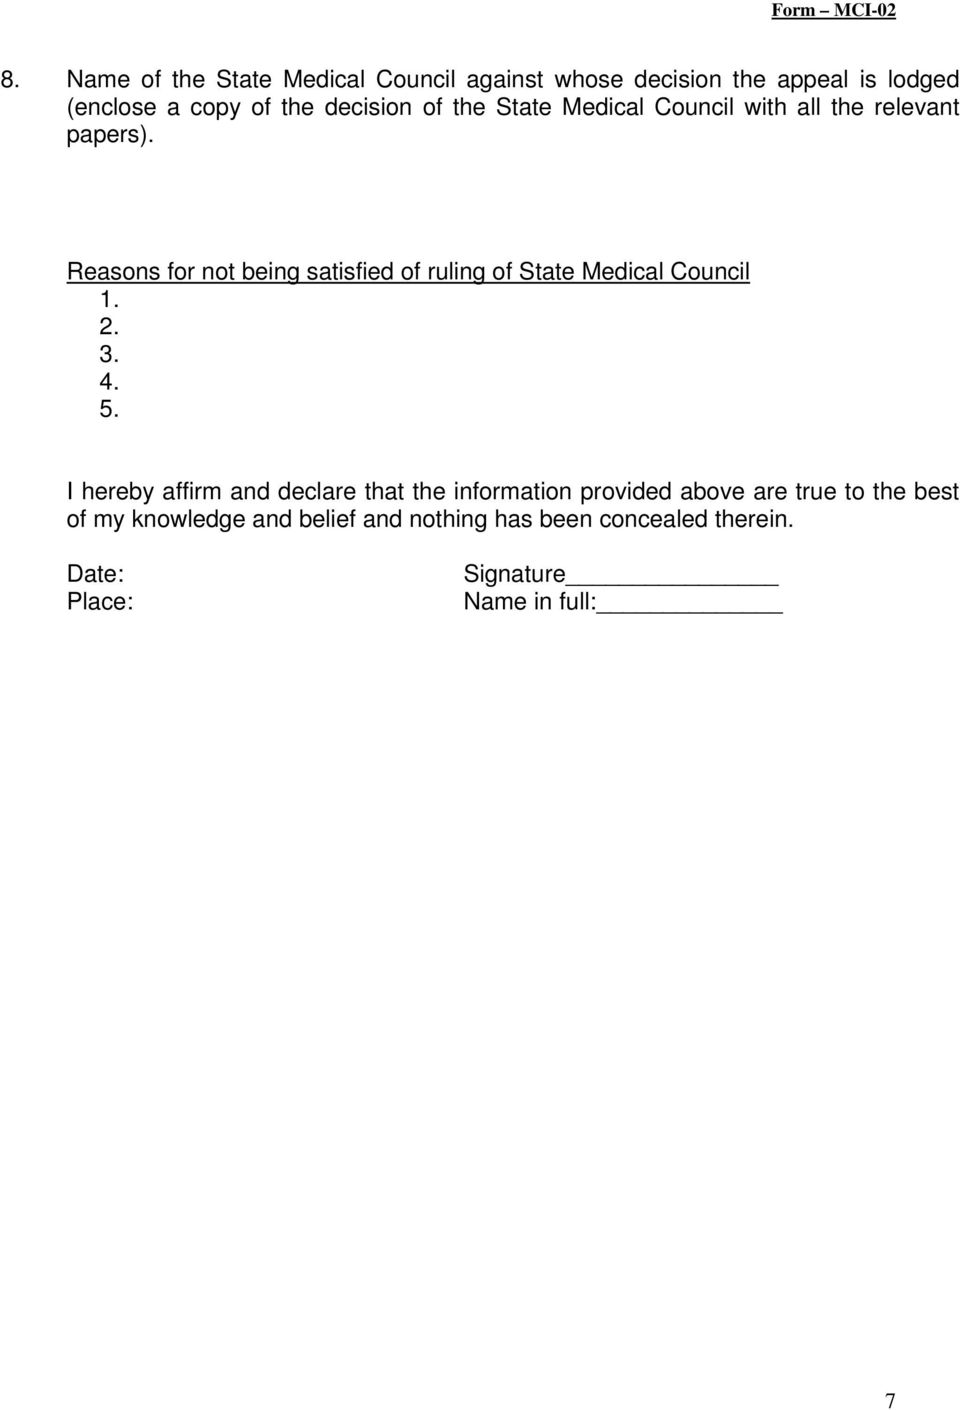 Reasons for not being satisfied of ruling of State Medical Council 1. 2. 3. 4. 5.